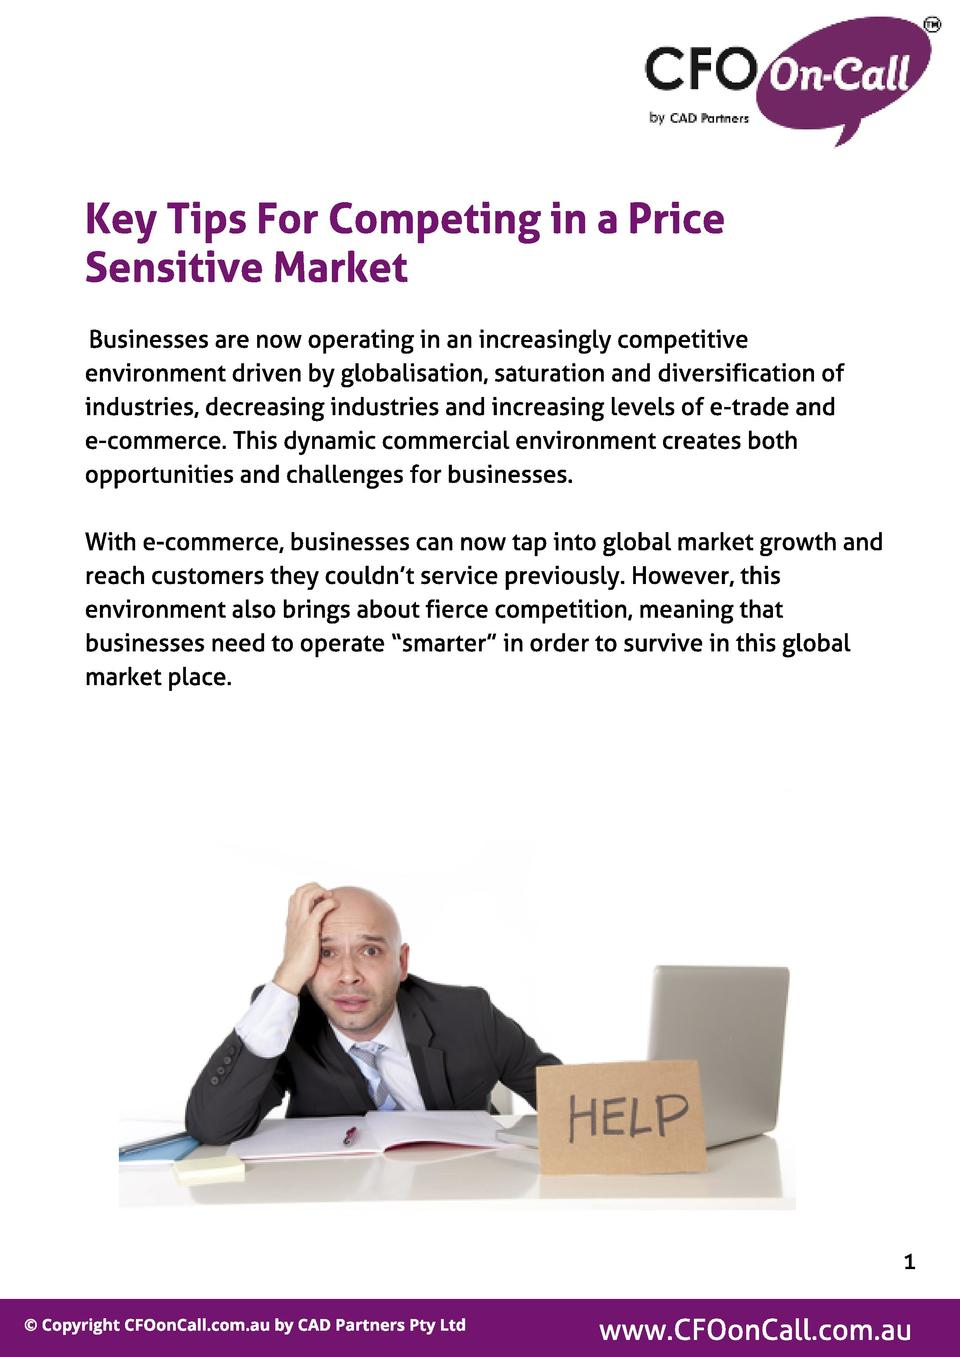 Key Tips For Compet ing in a Price Sensit ive Market Businesses are now operating in an increasingly competitive environme...